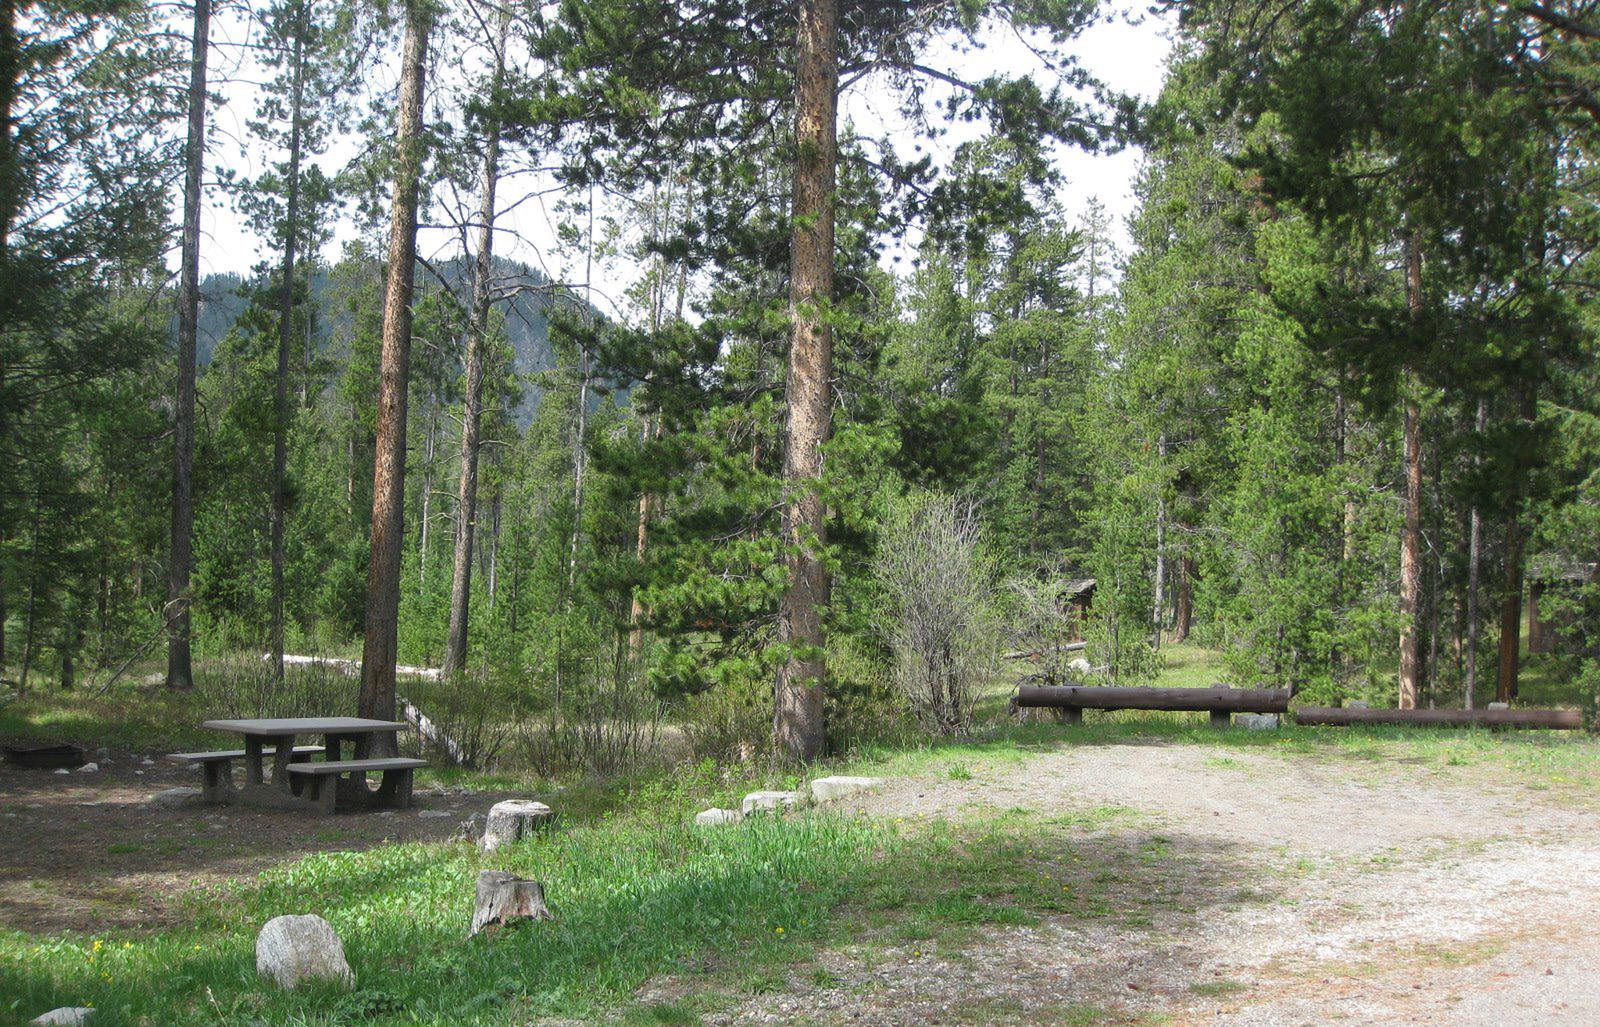 Site A20, campsite surrounded by pine trees, picnic table & fire ringSite A20